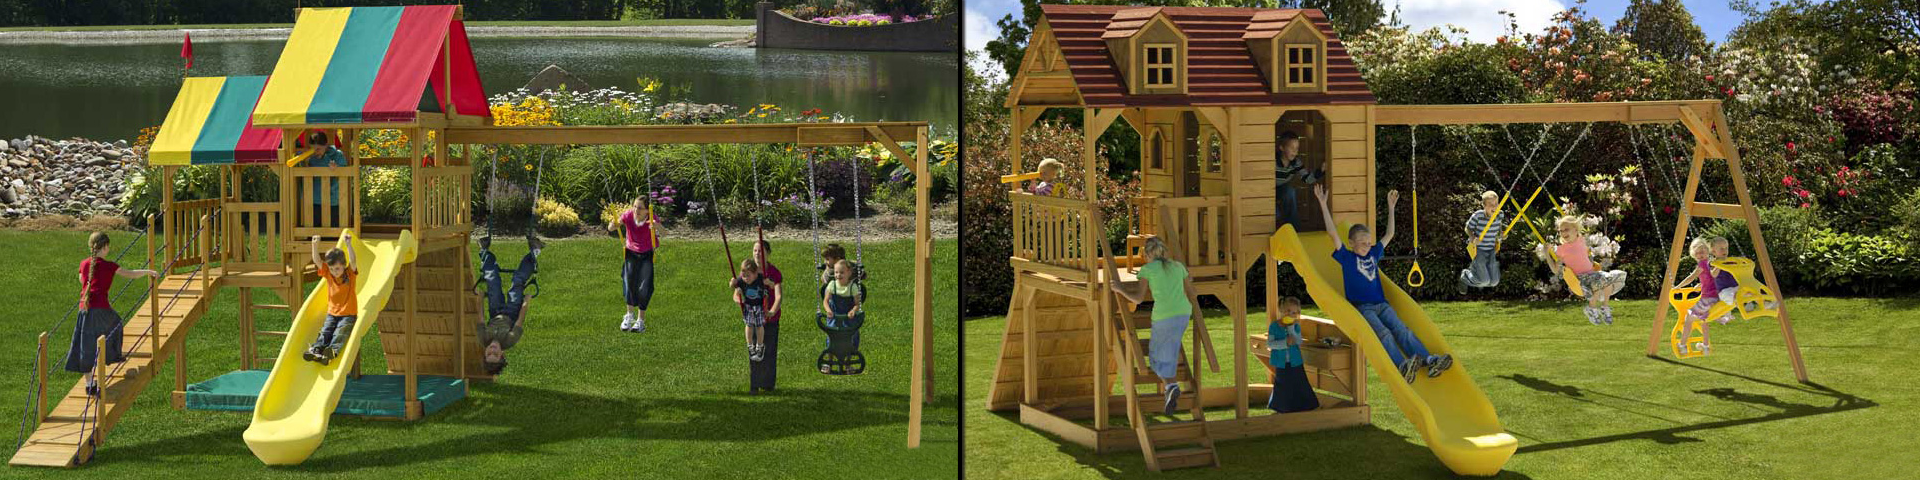 Pro Edge Play Mor Playsets